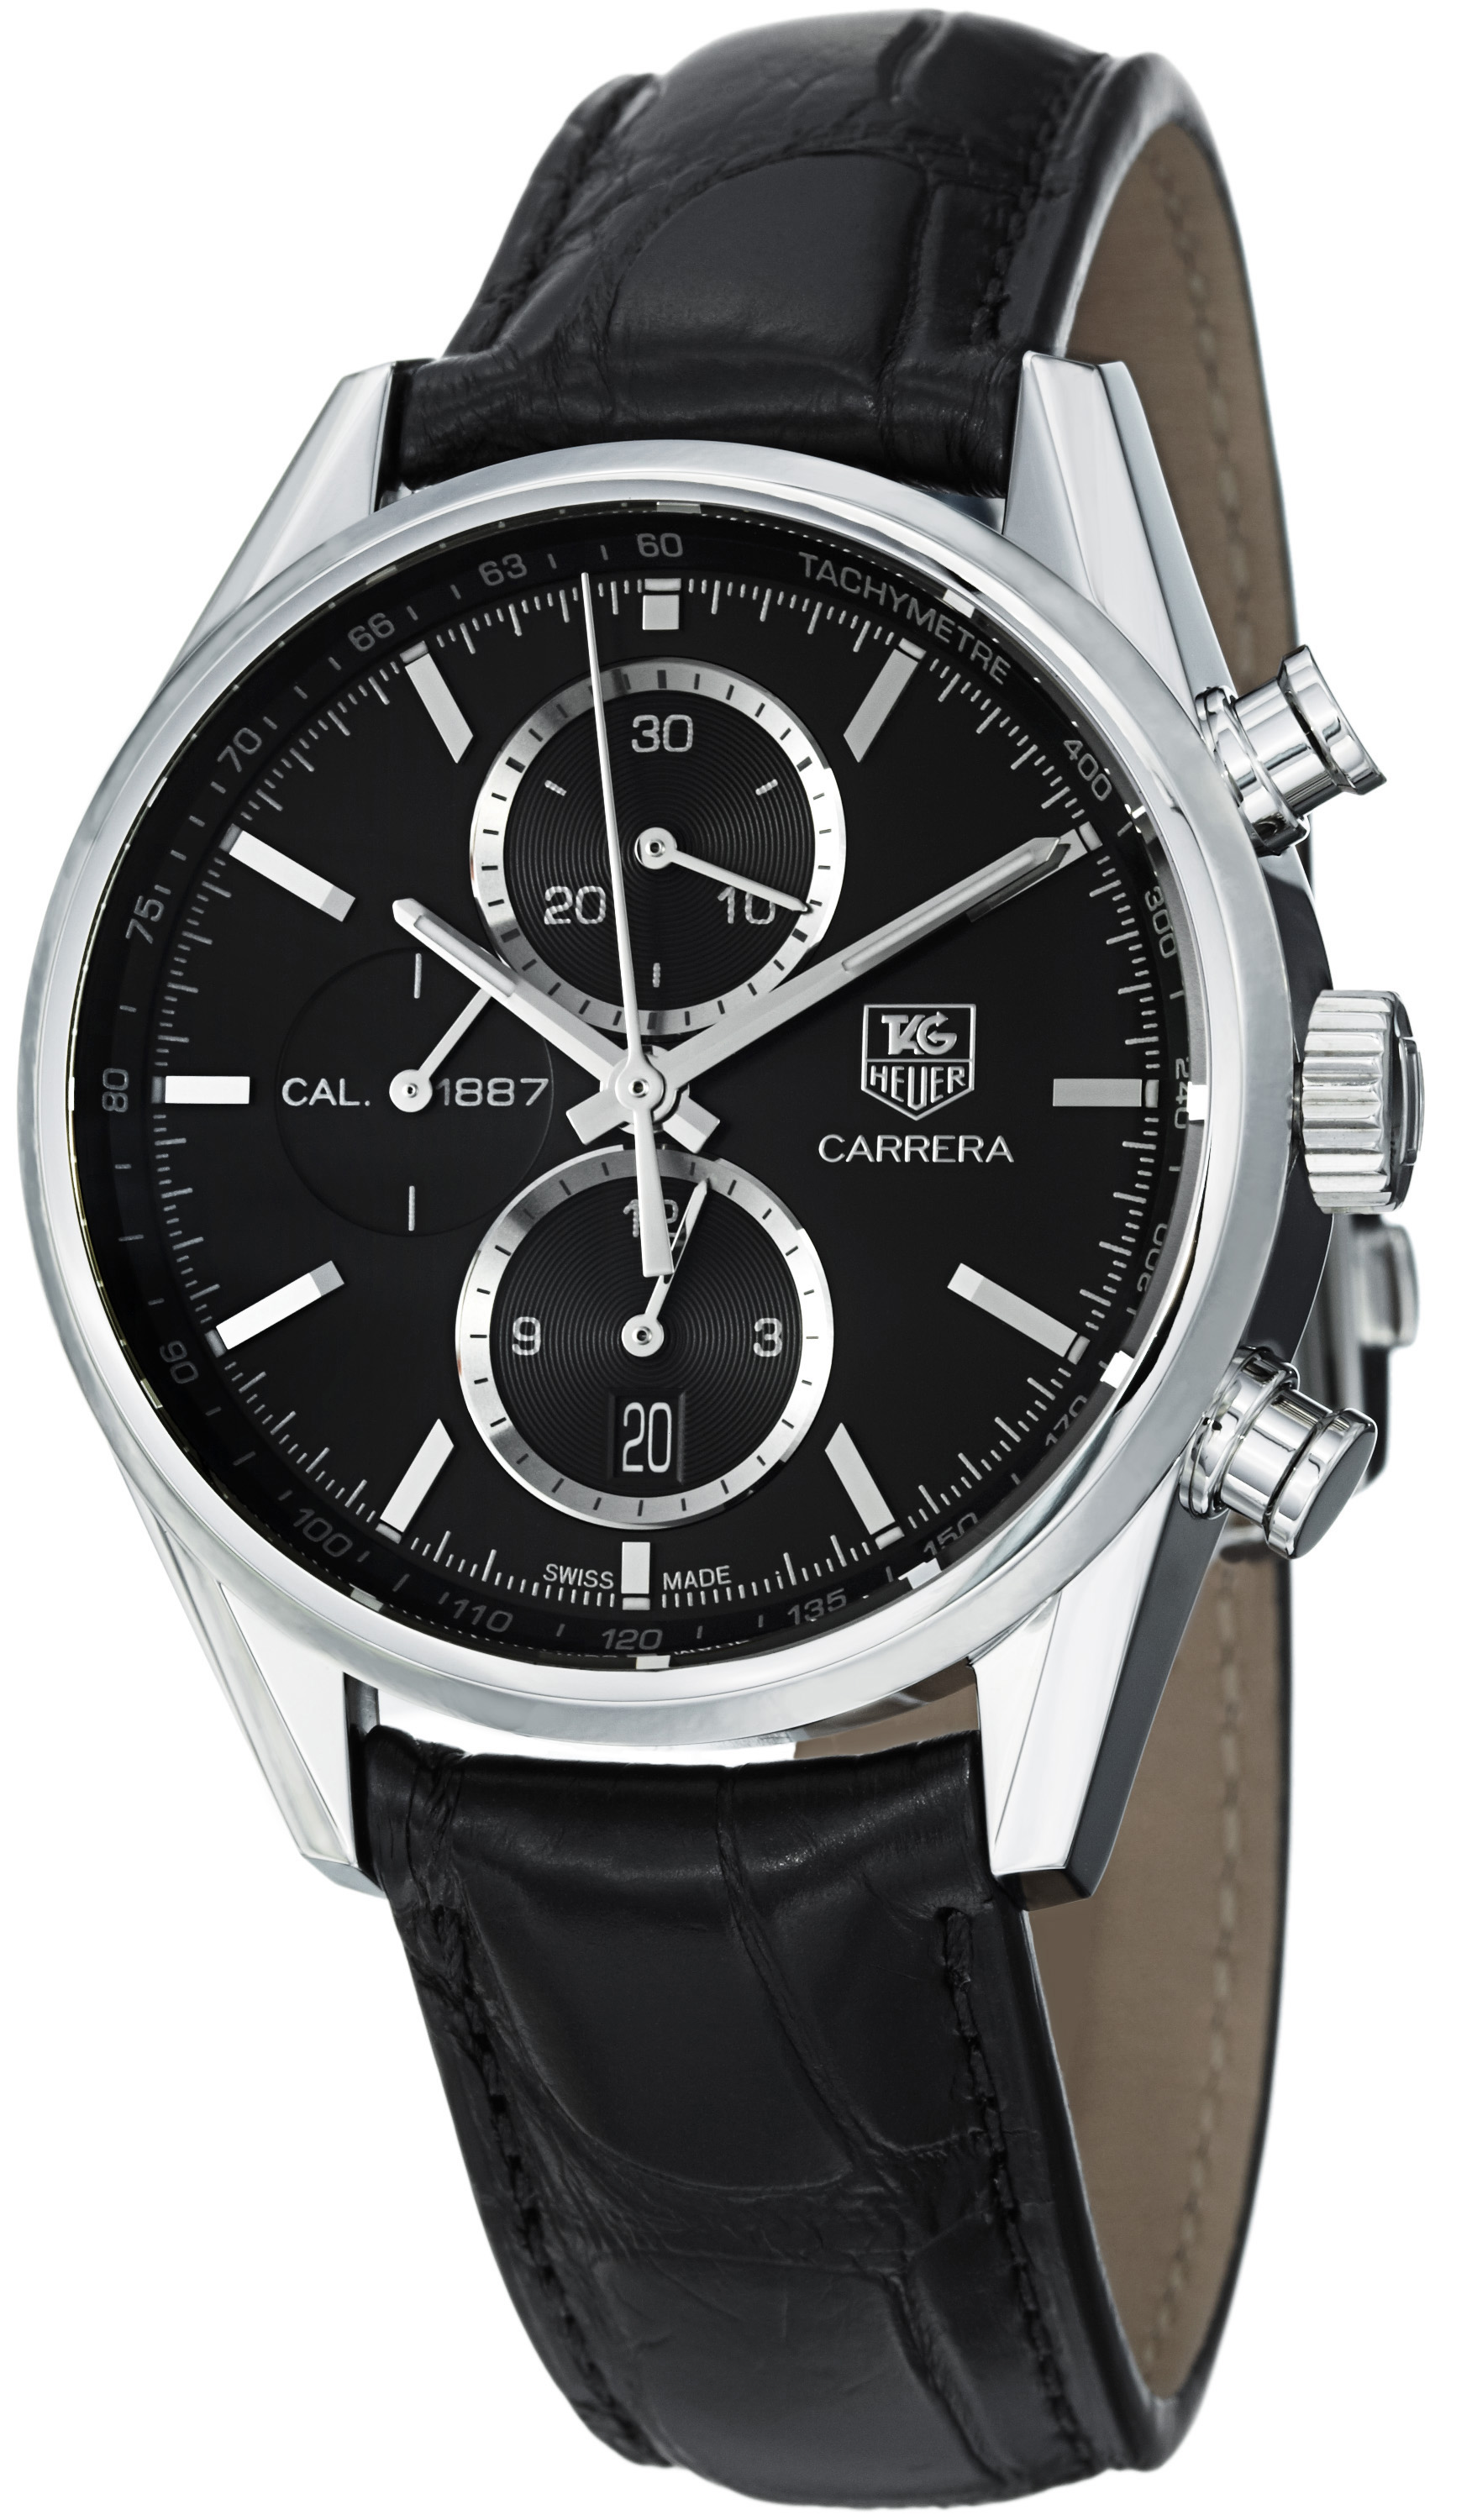 the carrera heuer tag quality more high of find semikrograph history watches replica